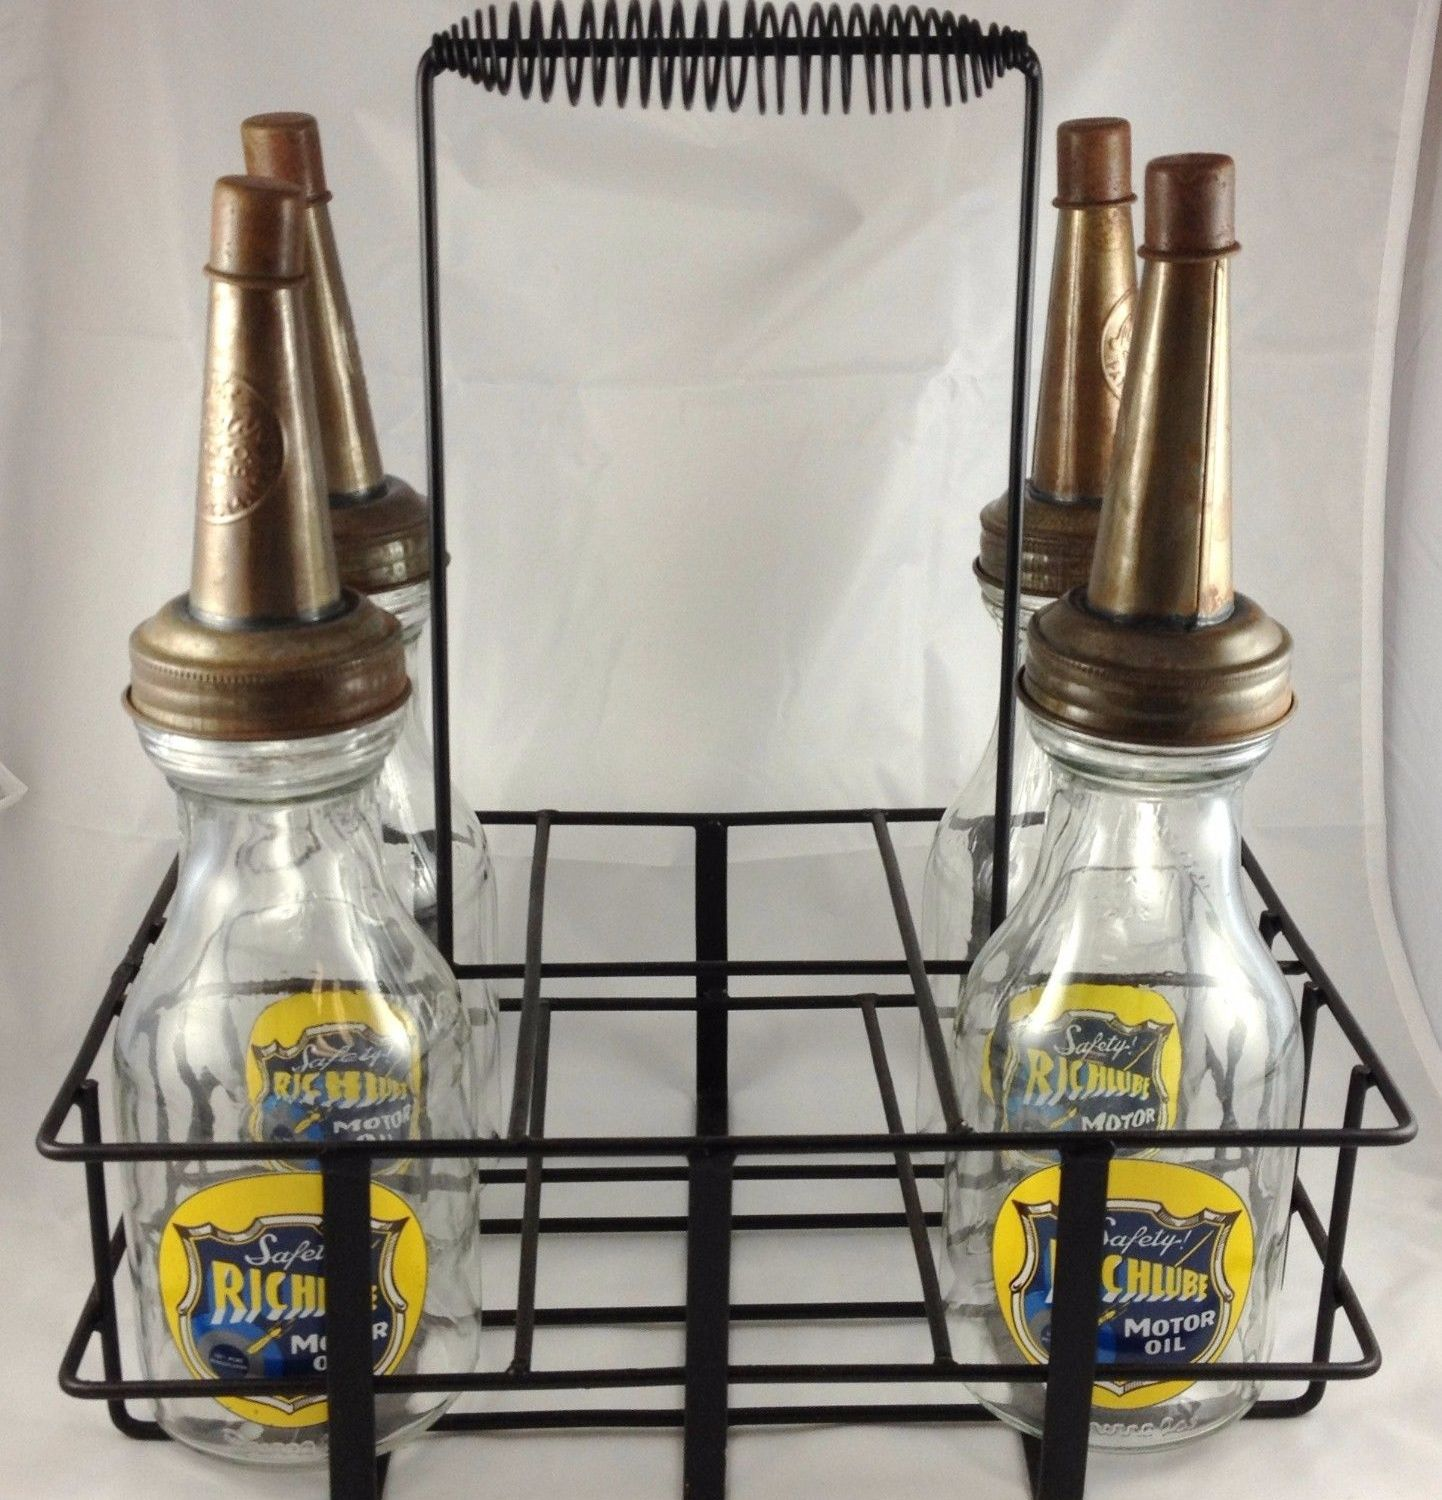 Richlube Gas Glass Motor Oil Bottles With Metal Carrier